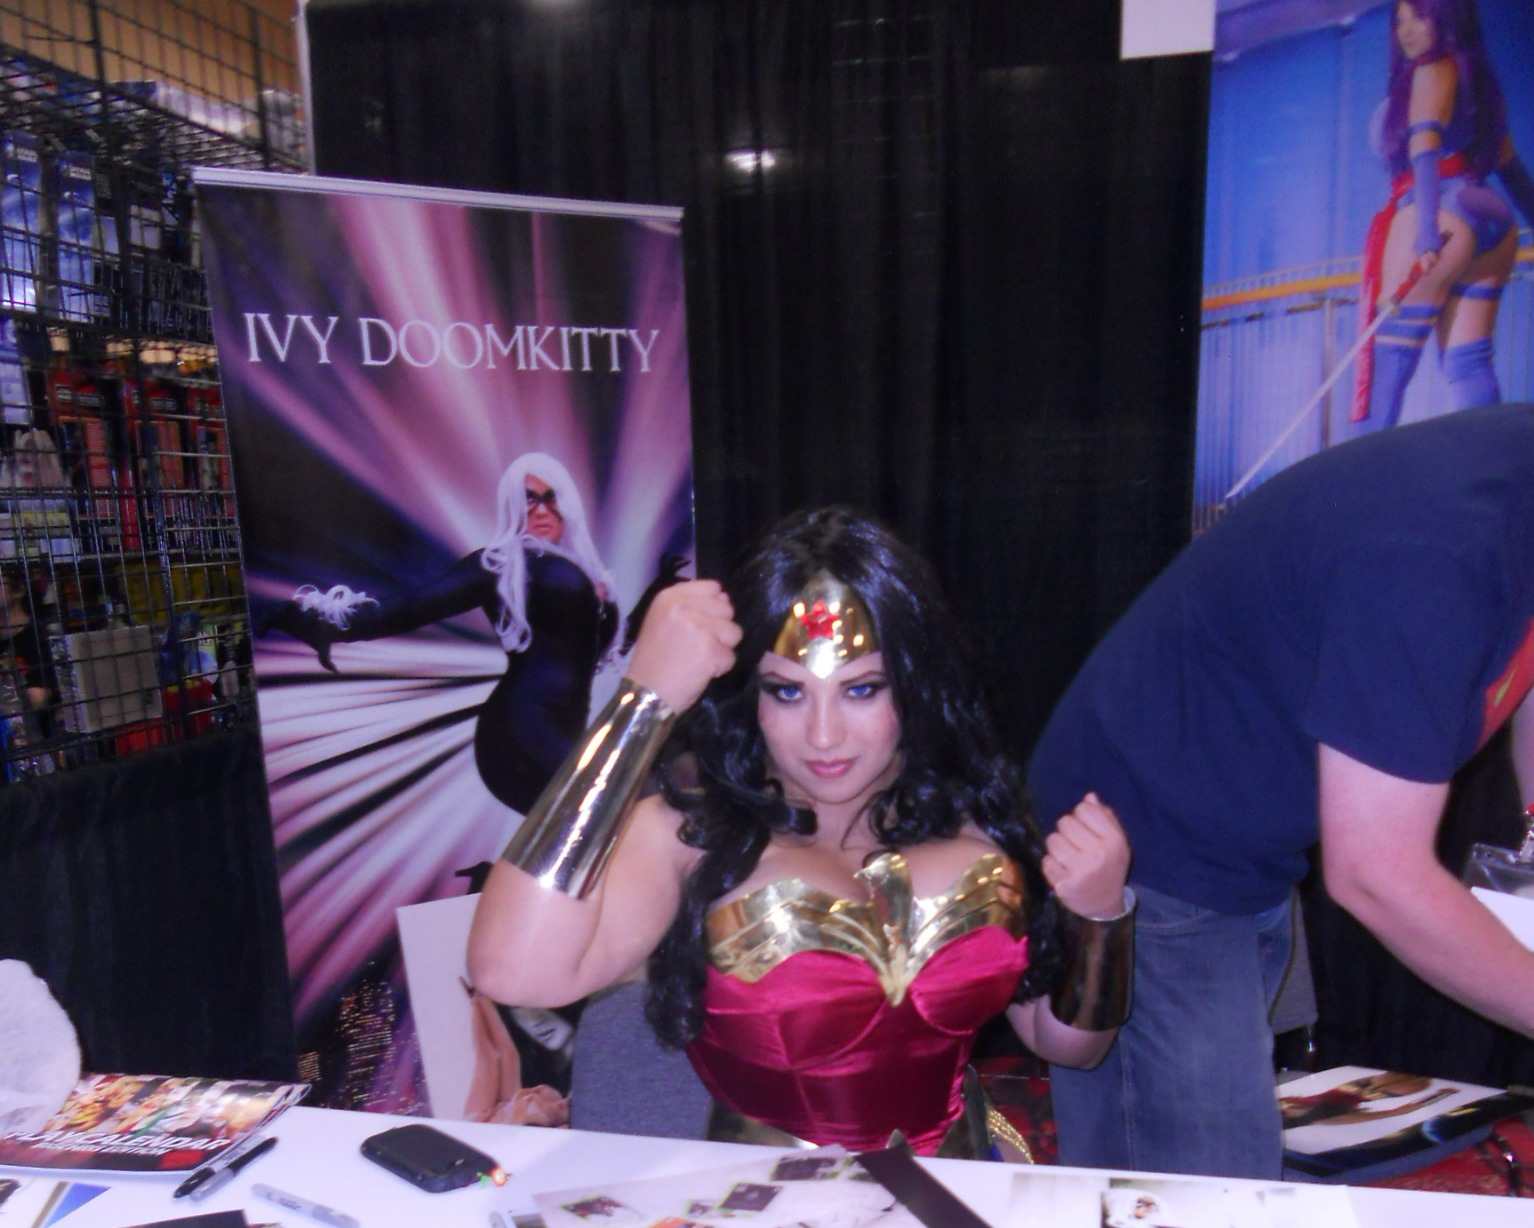 Cosplayer Ivy Doomkitty